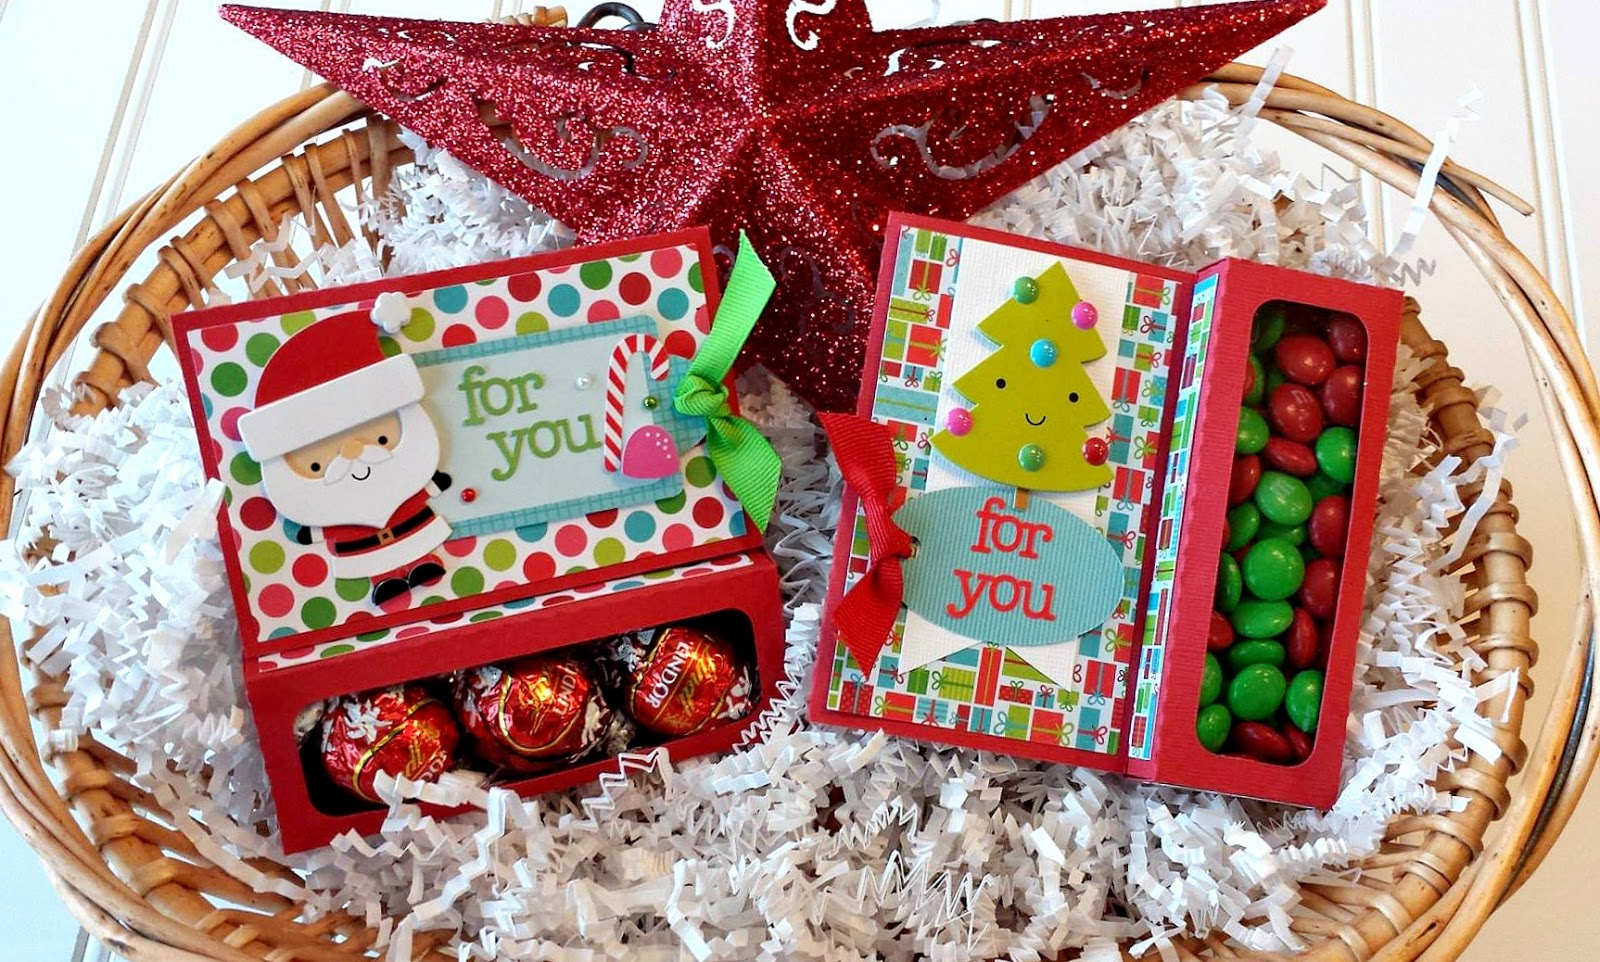 Doodlebug Design Inc Blog: Gift Card Holders with a Fun Twist!